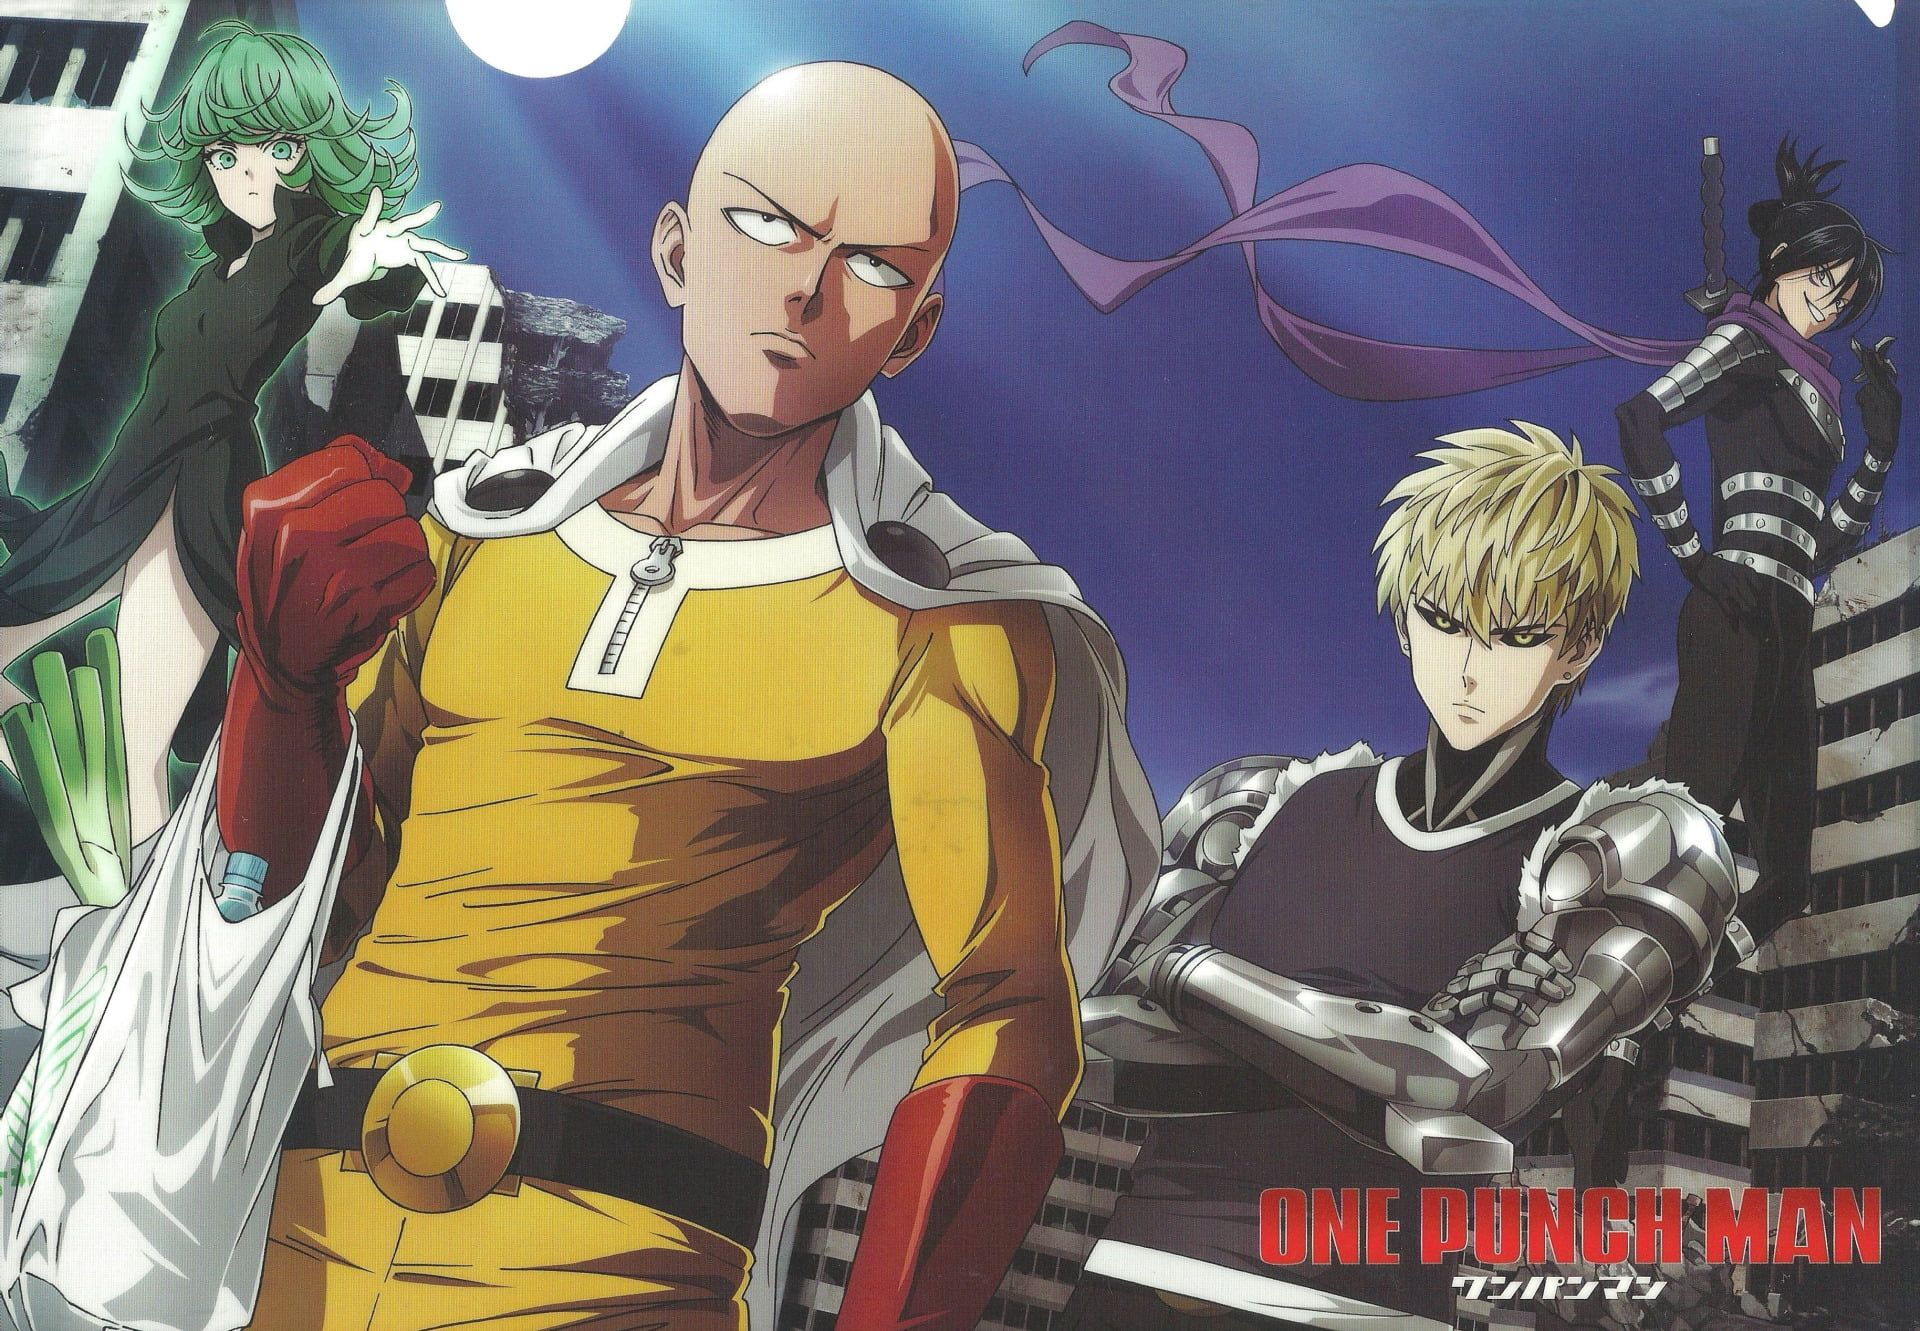 One Punch Man graphic artwork Anime OnePunch Man Angry